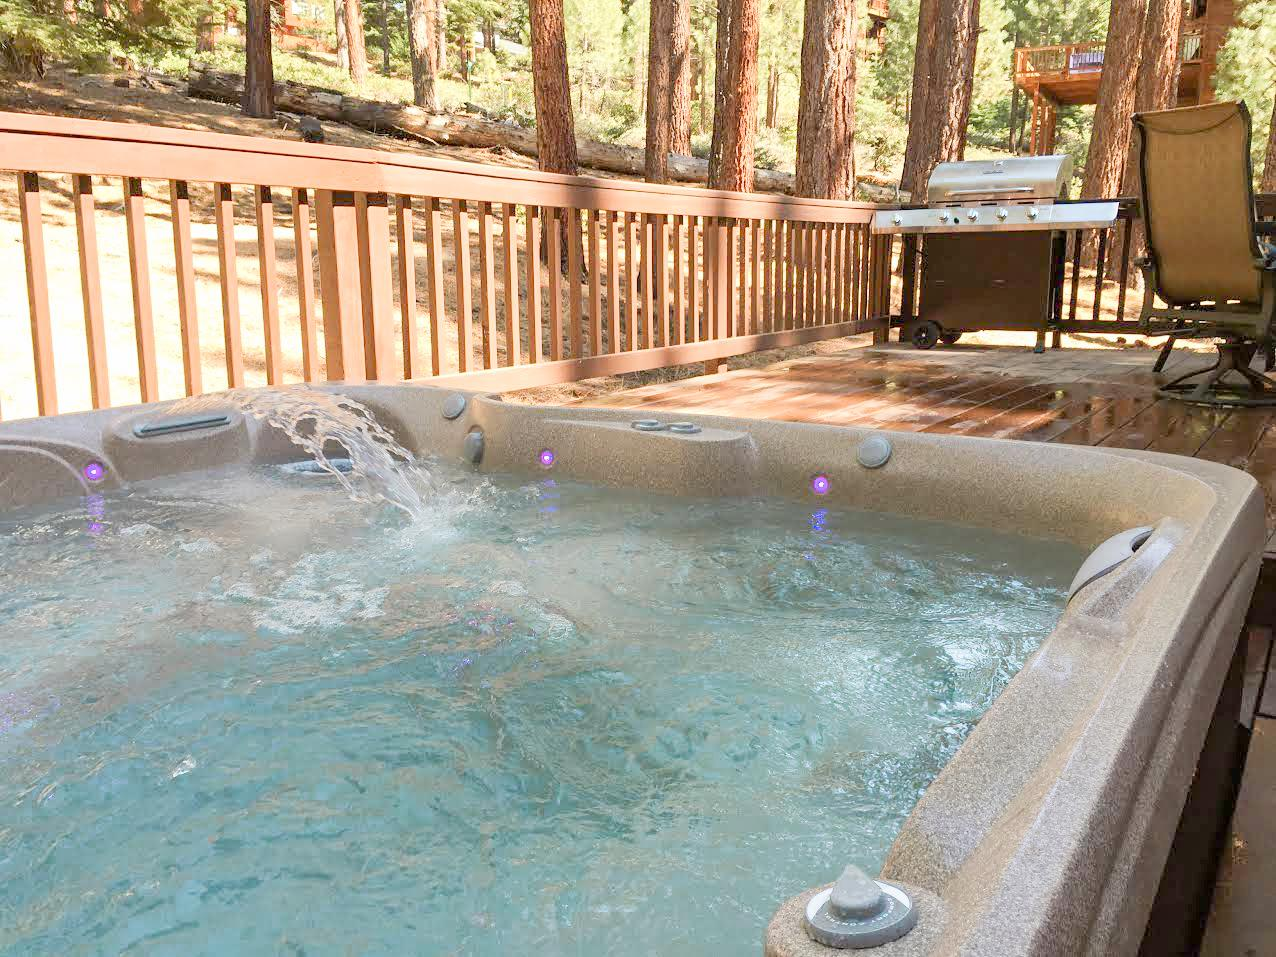 After a day of adventure, unwind in the private hot tub.